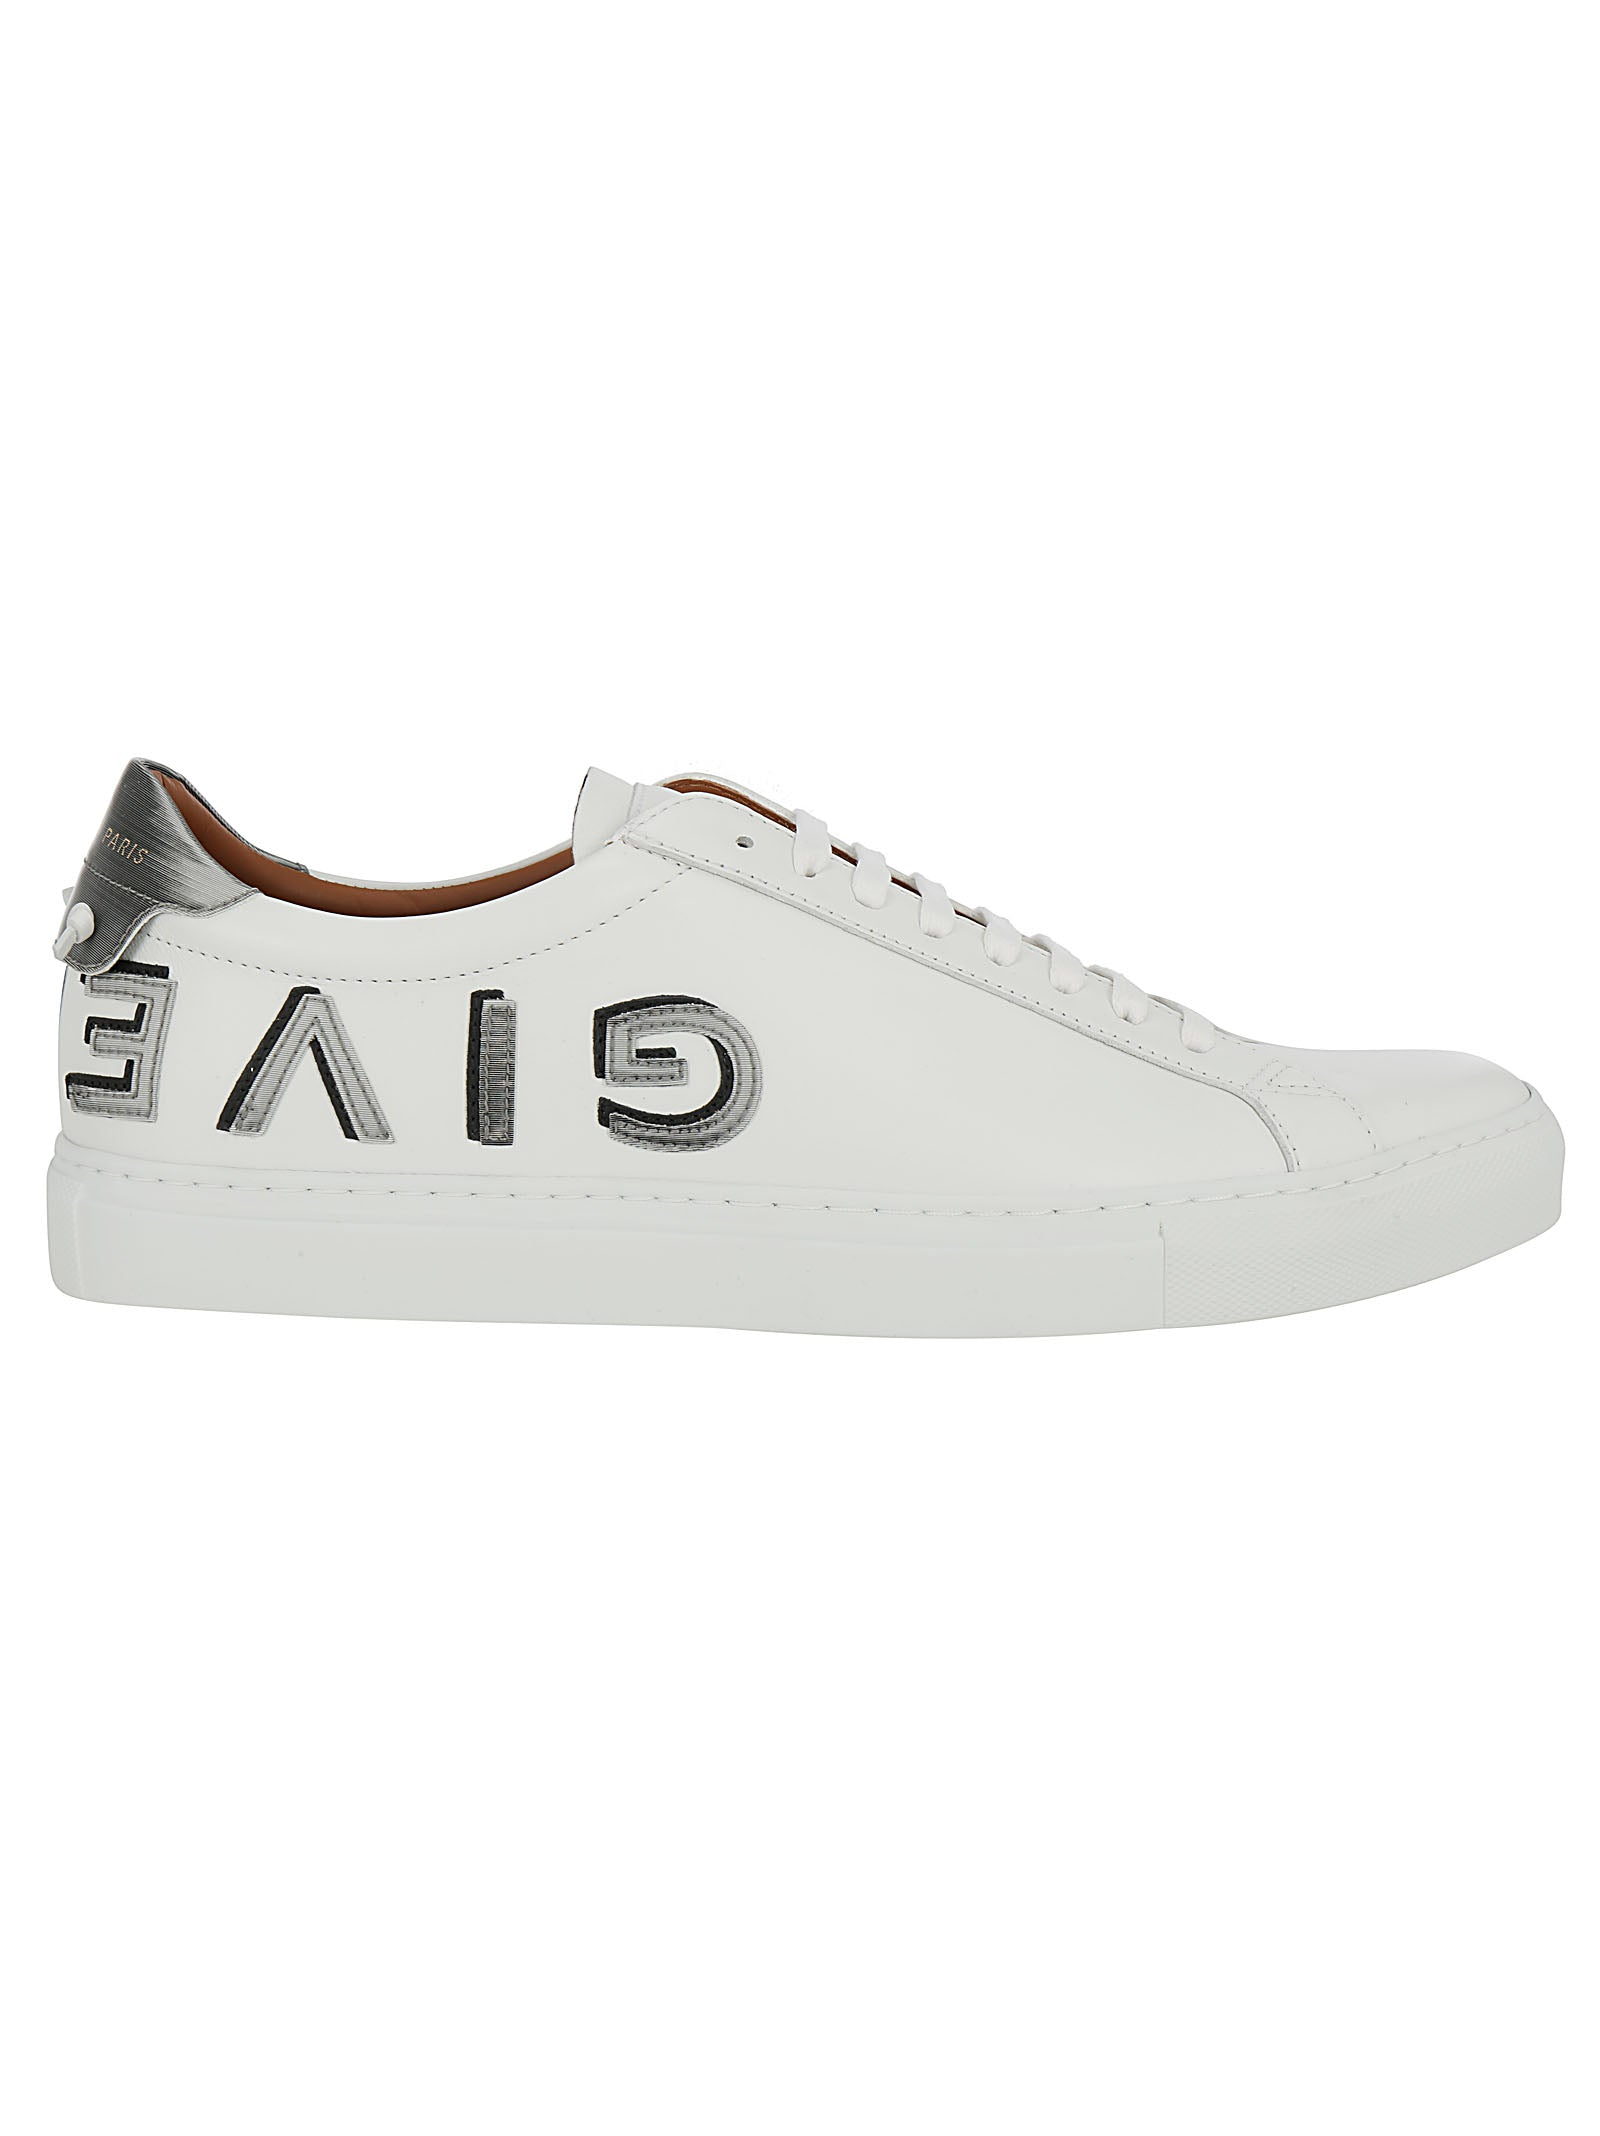 Givenchy Sneakers GIVENCHY REVERSE LOGO SNEAKERS